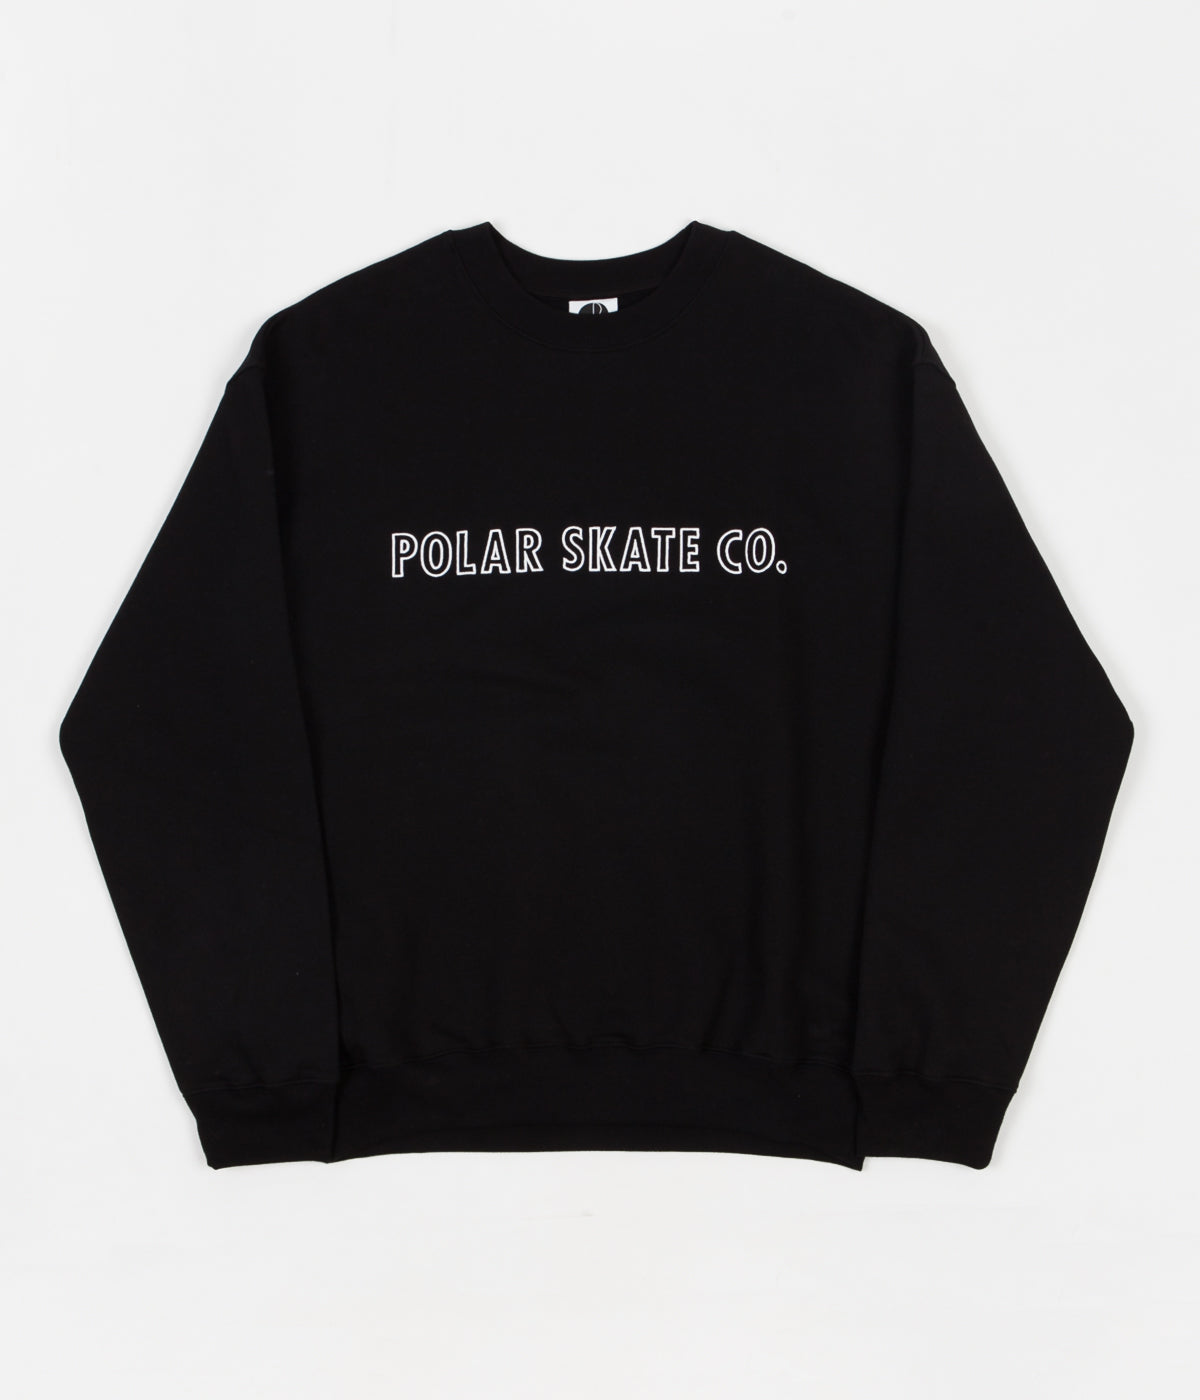 Polar Outline Crewneck Sweatshirt - Black